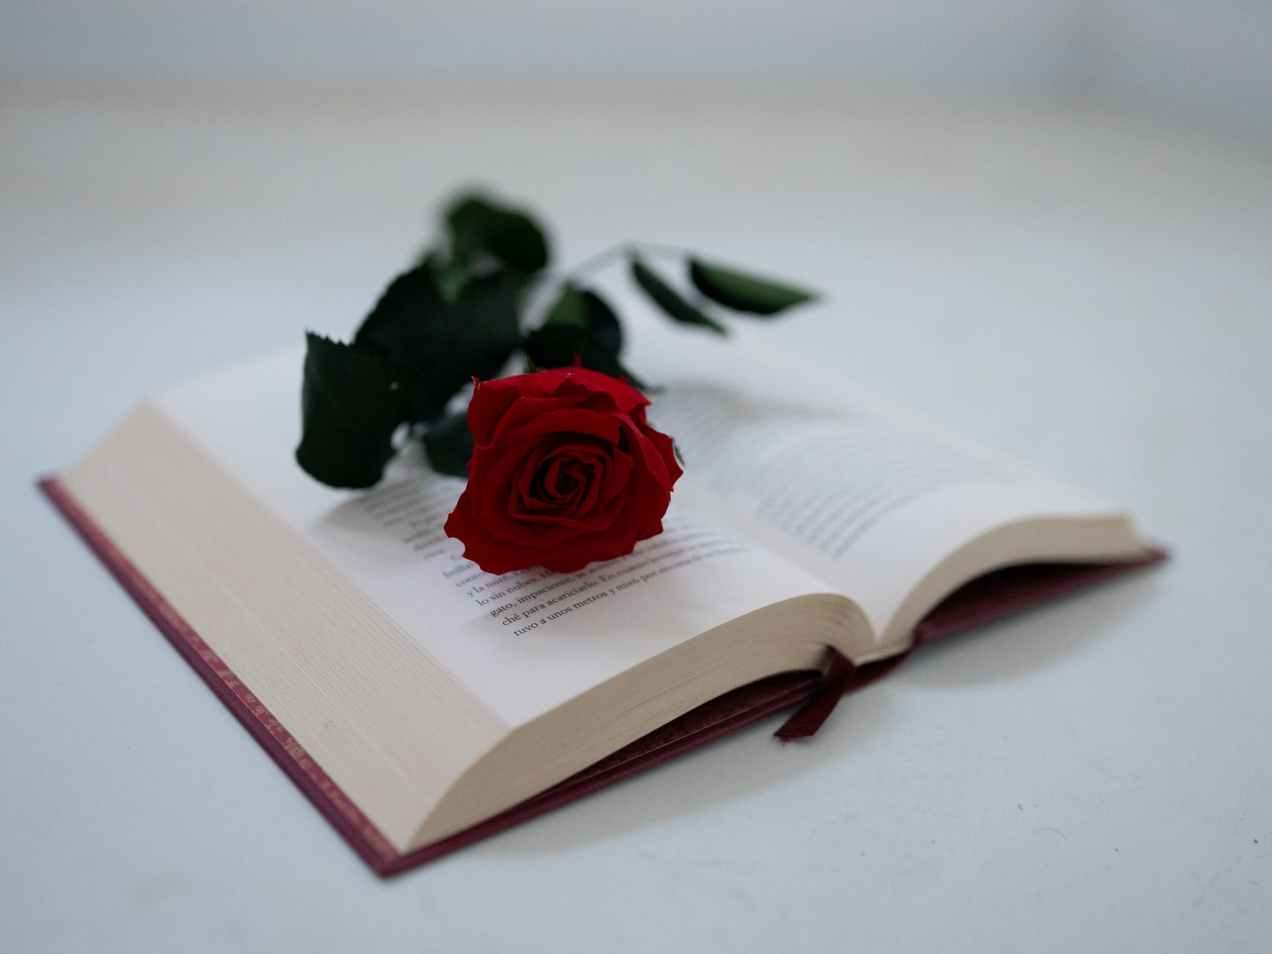 a red rose on an open book